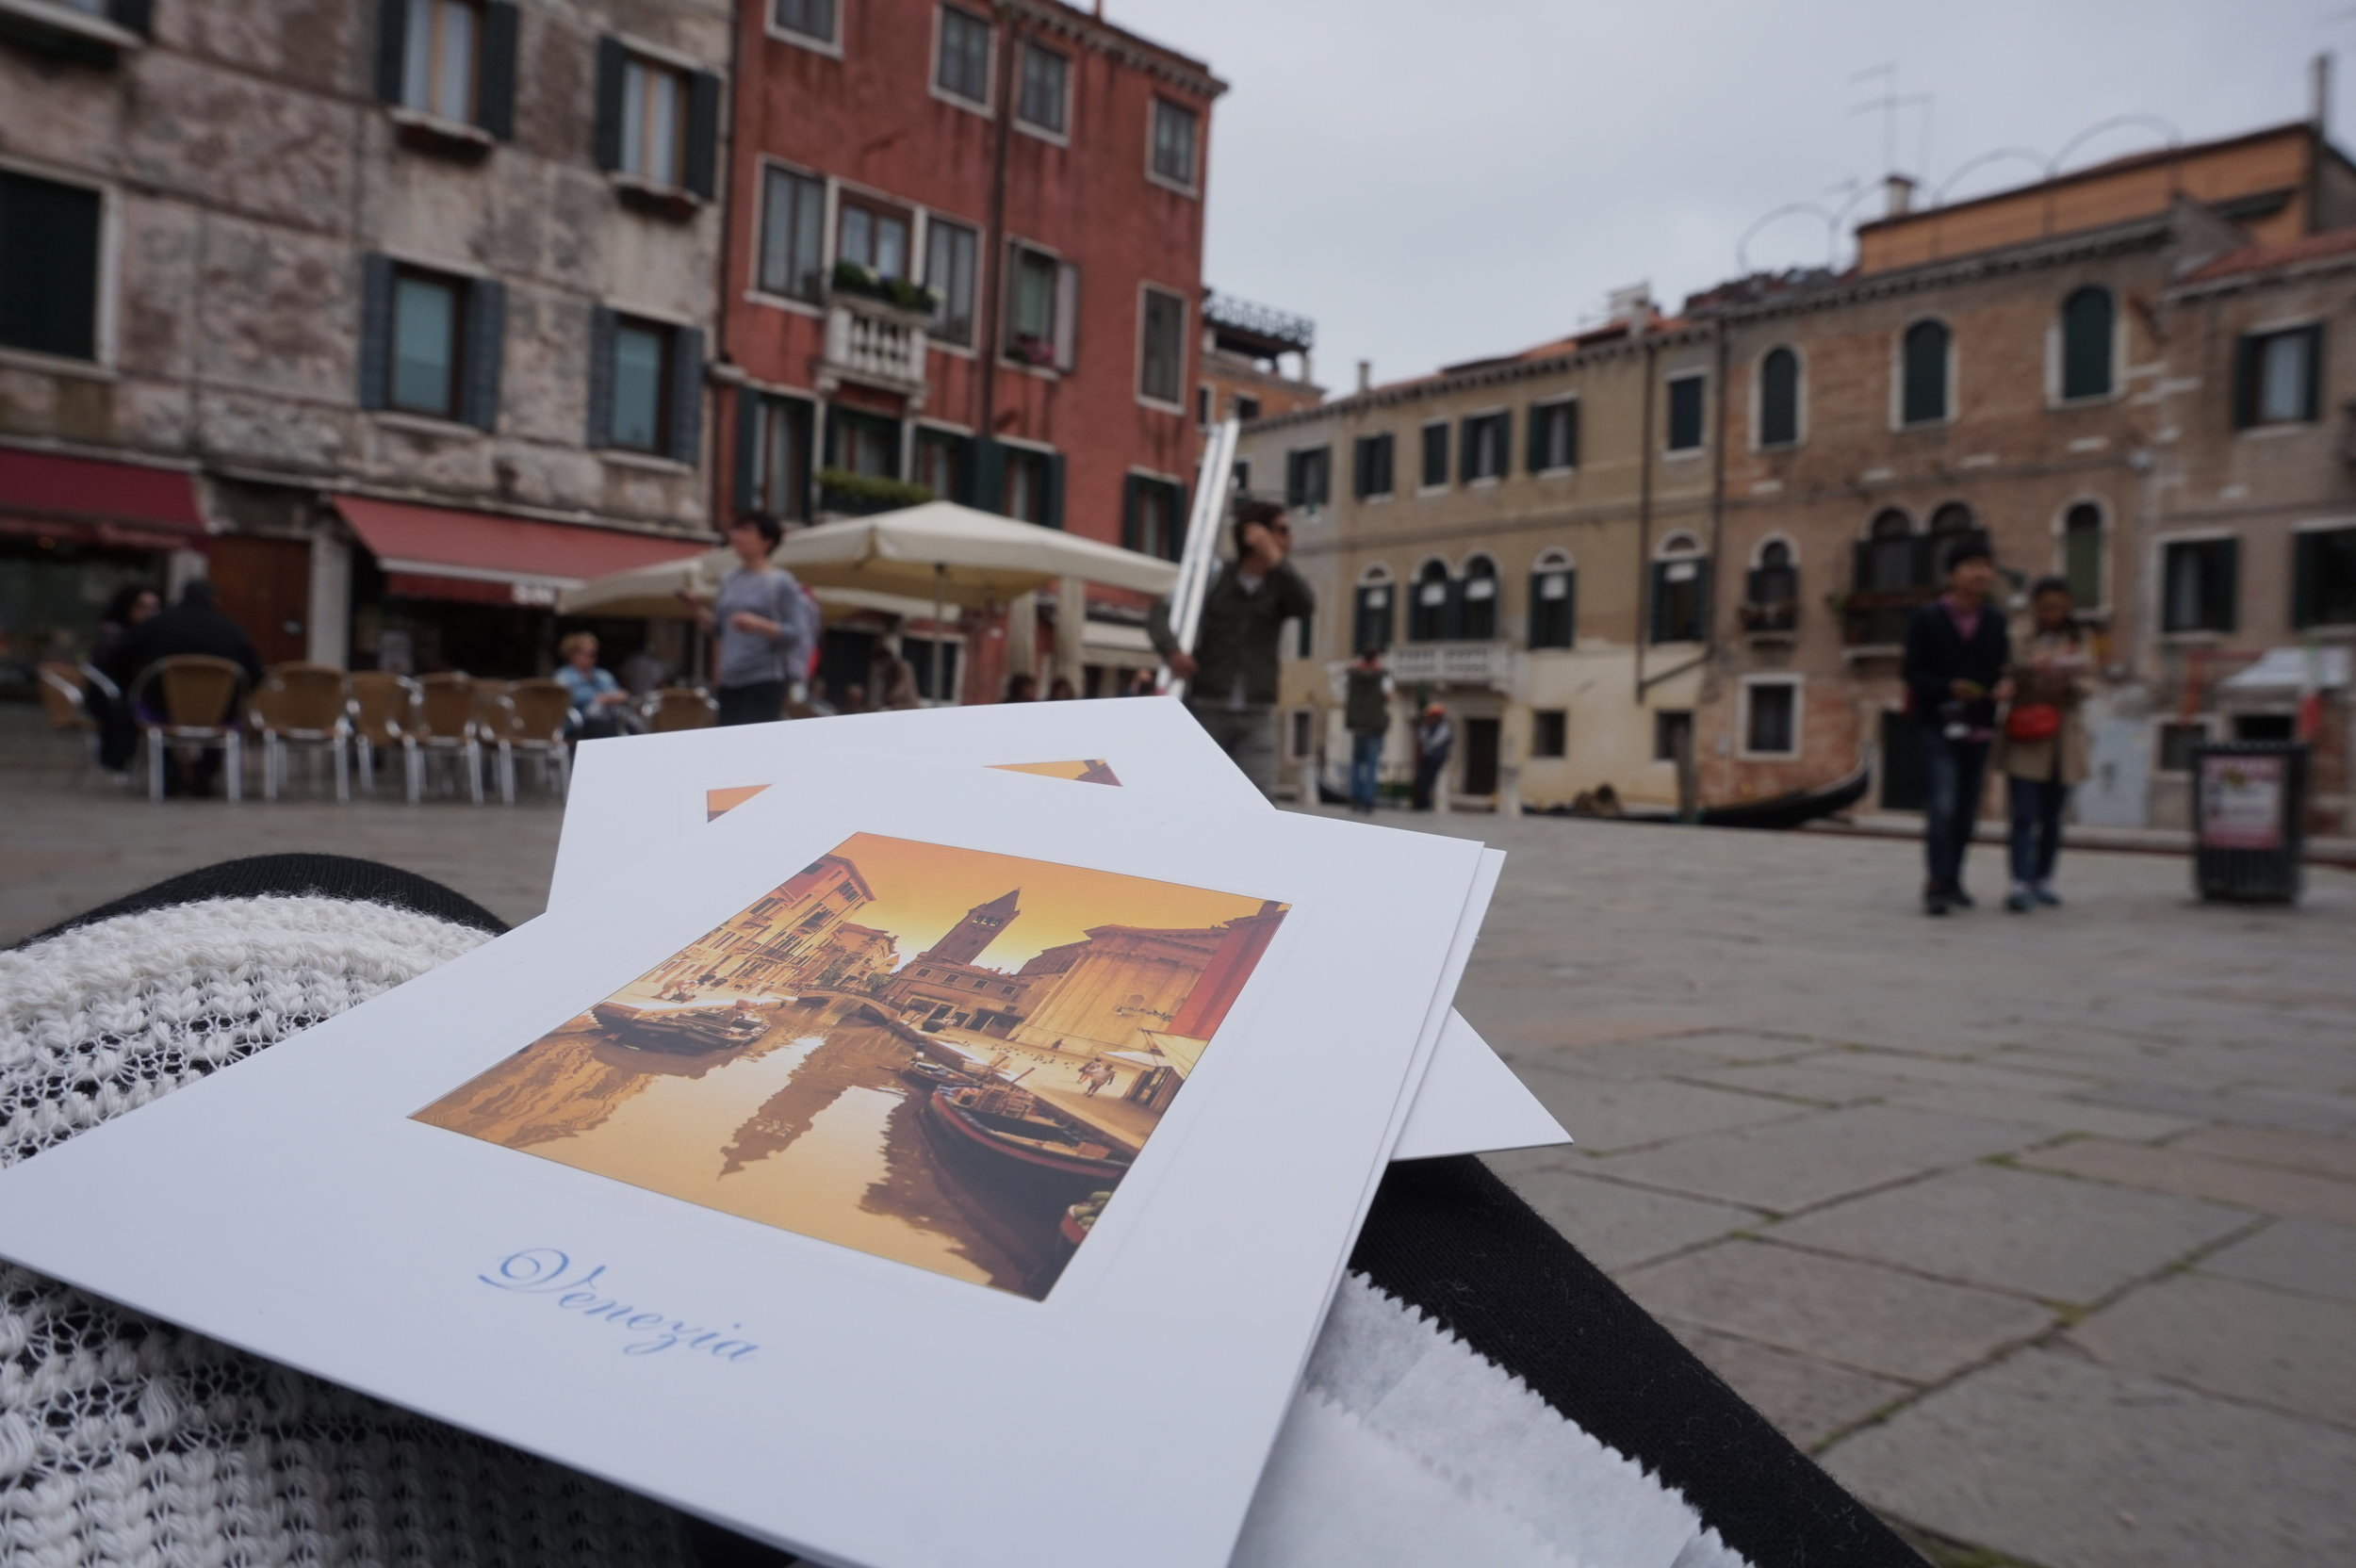 POSTCARD WRITING IN VENICE